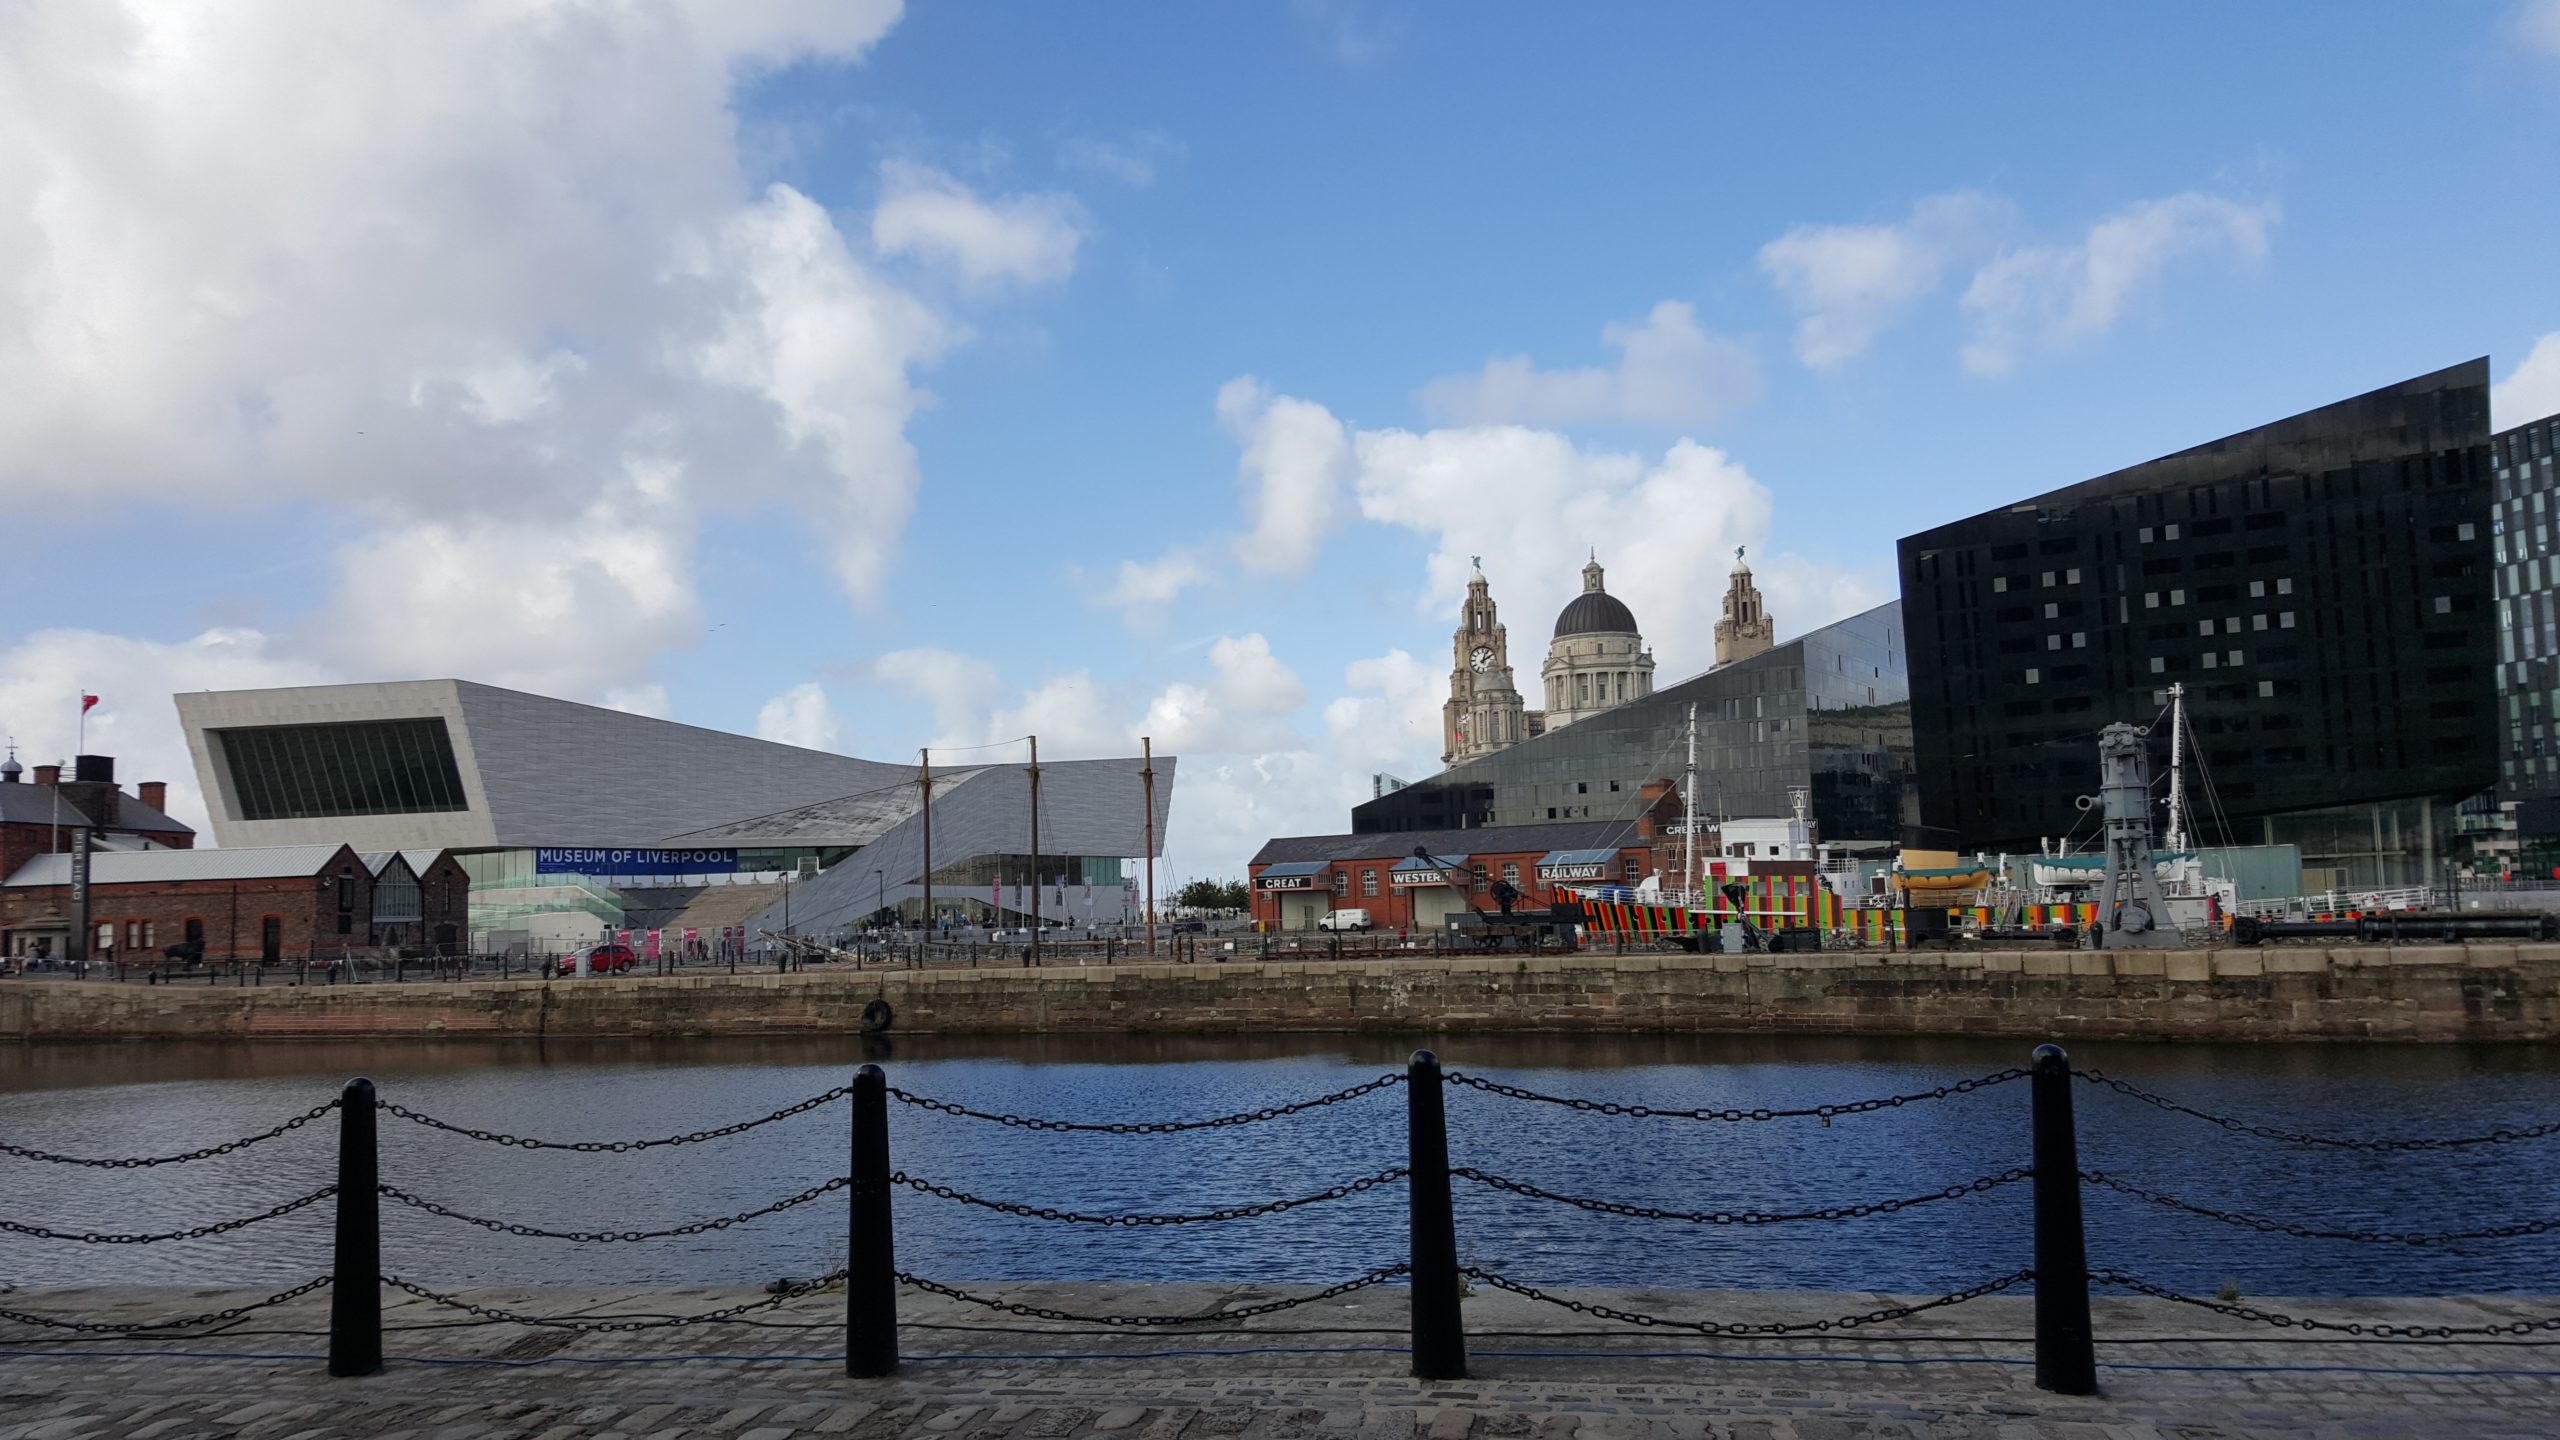 Merseyside view of Liverpool